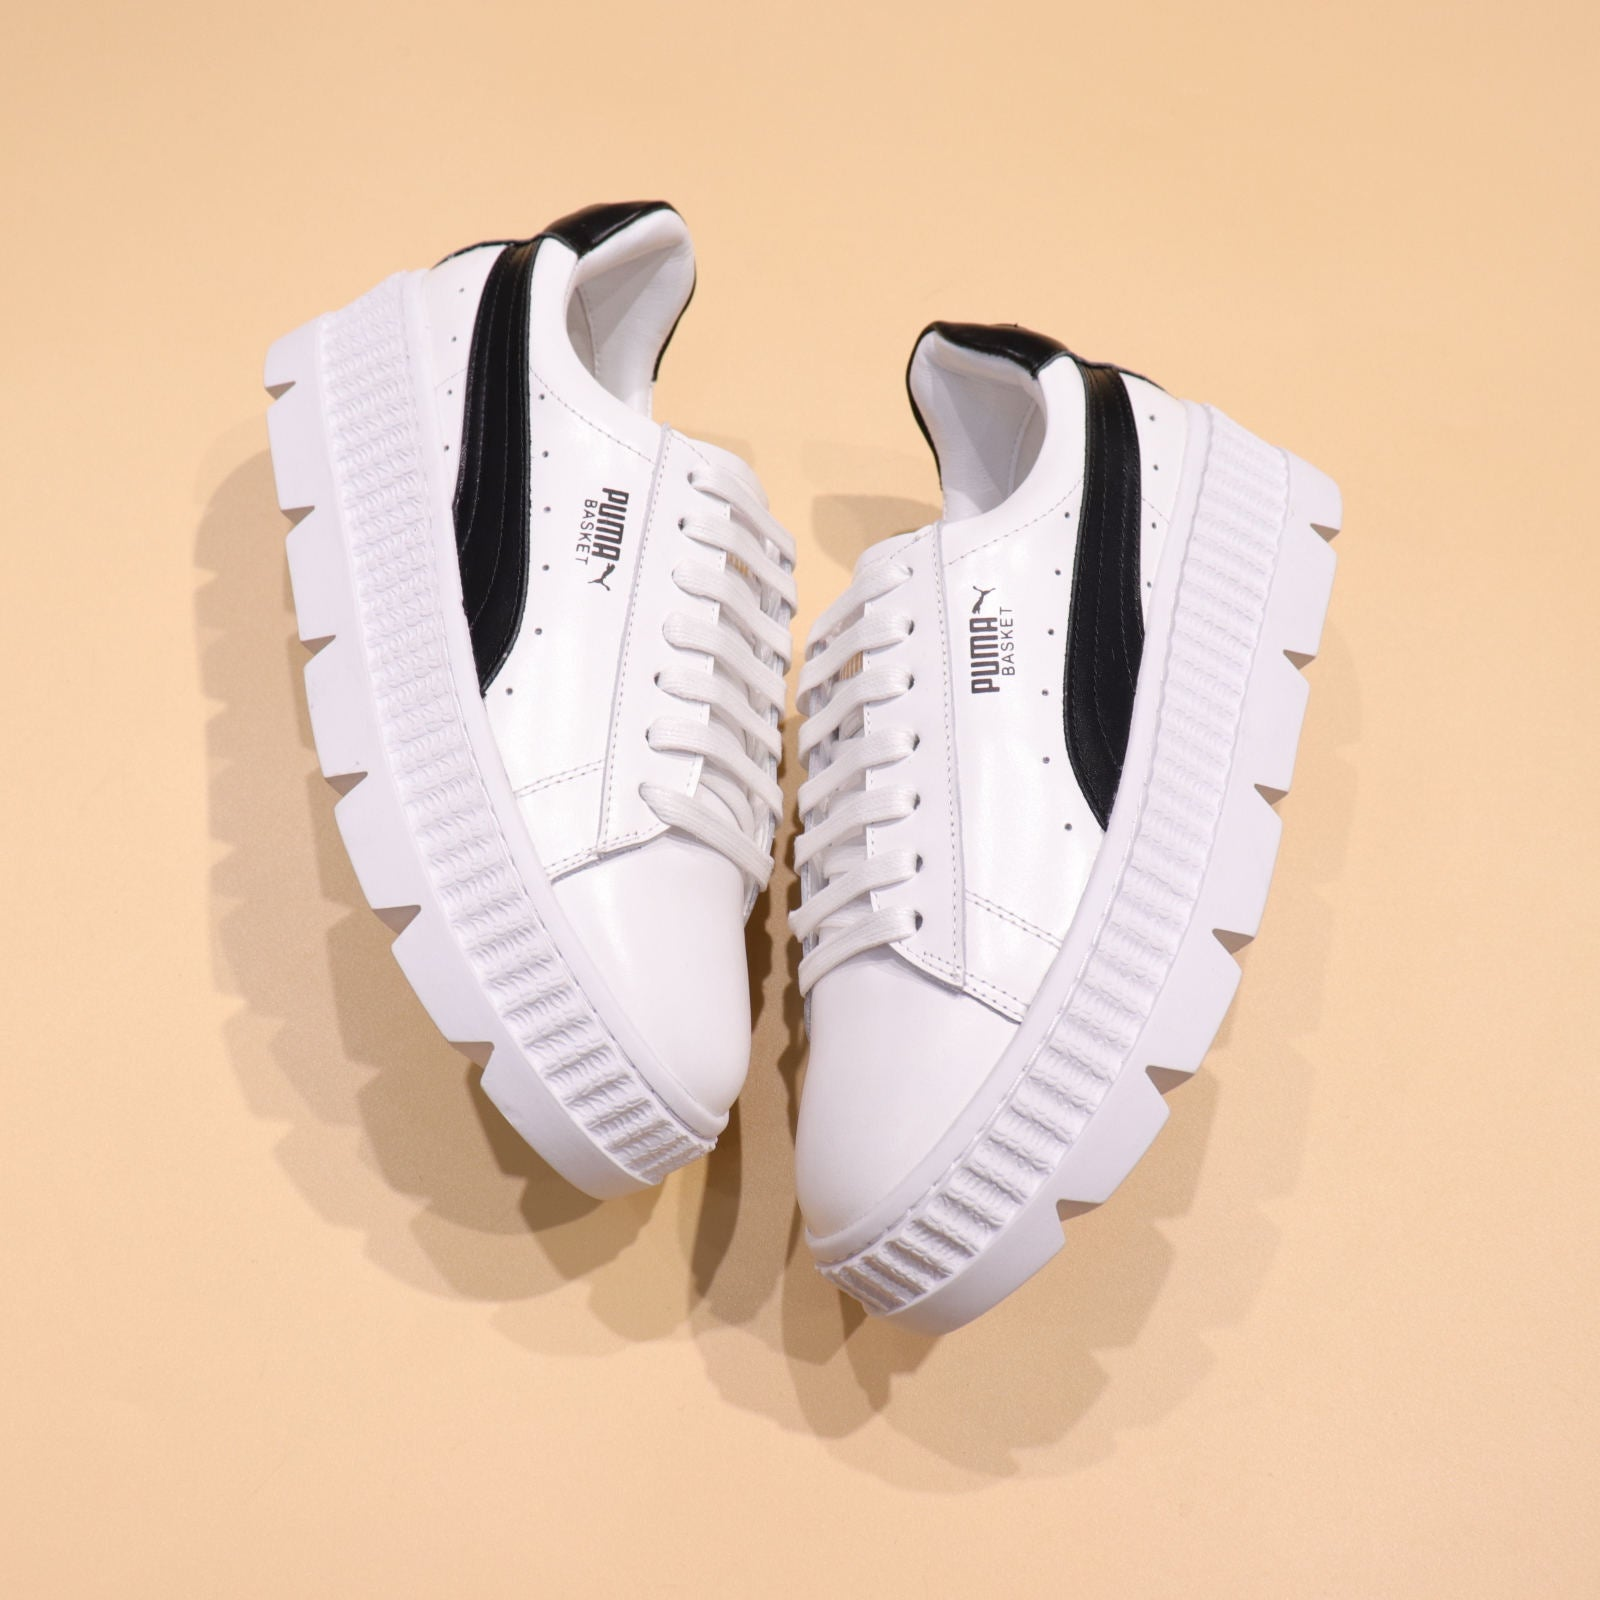 Rihanna x Puma Fenty Cleated Creeper  White-Black  f61b7d1dce96